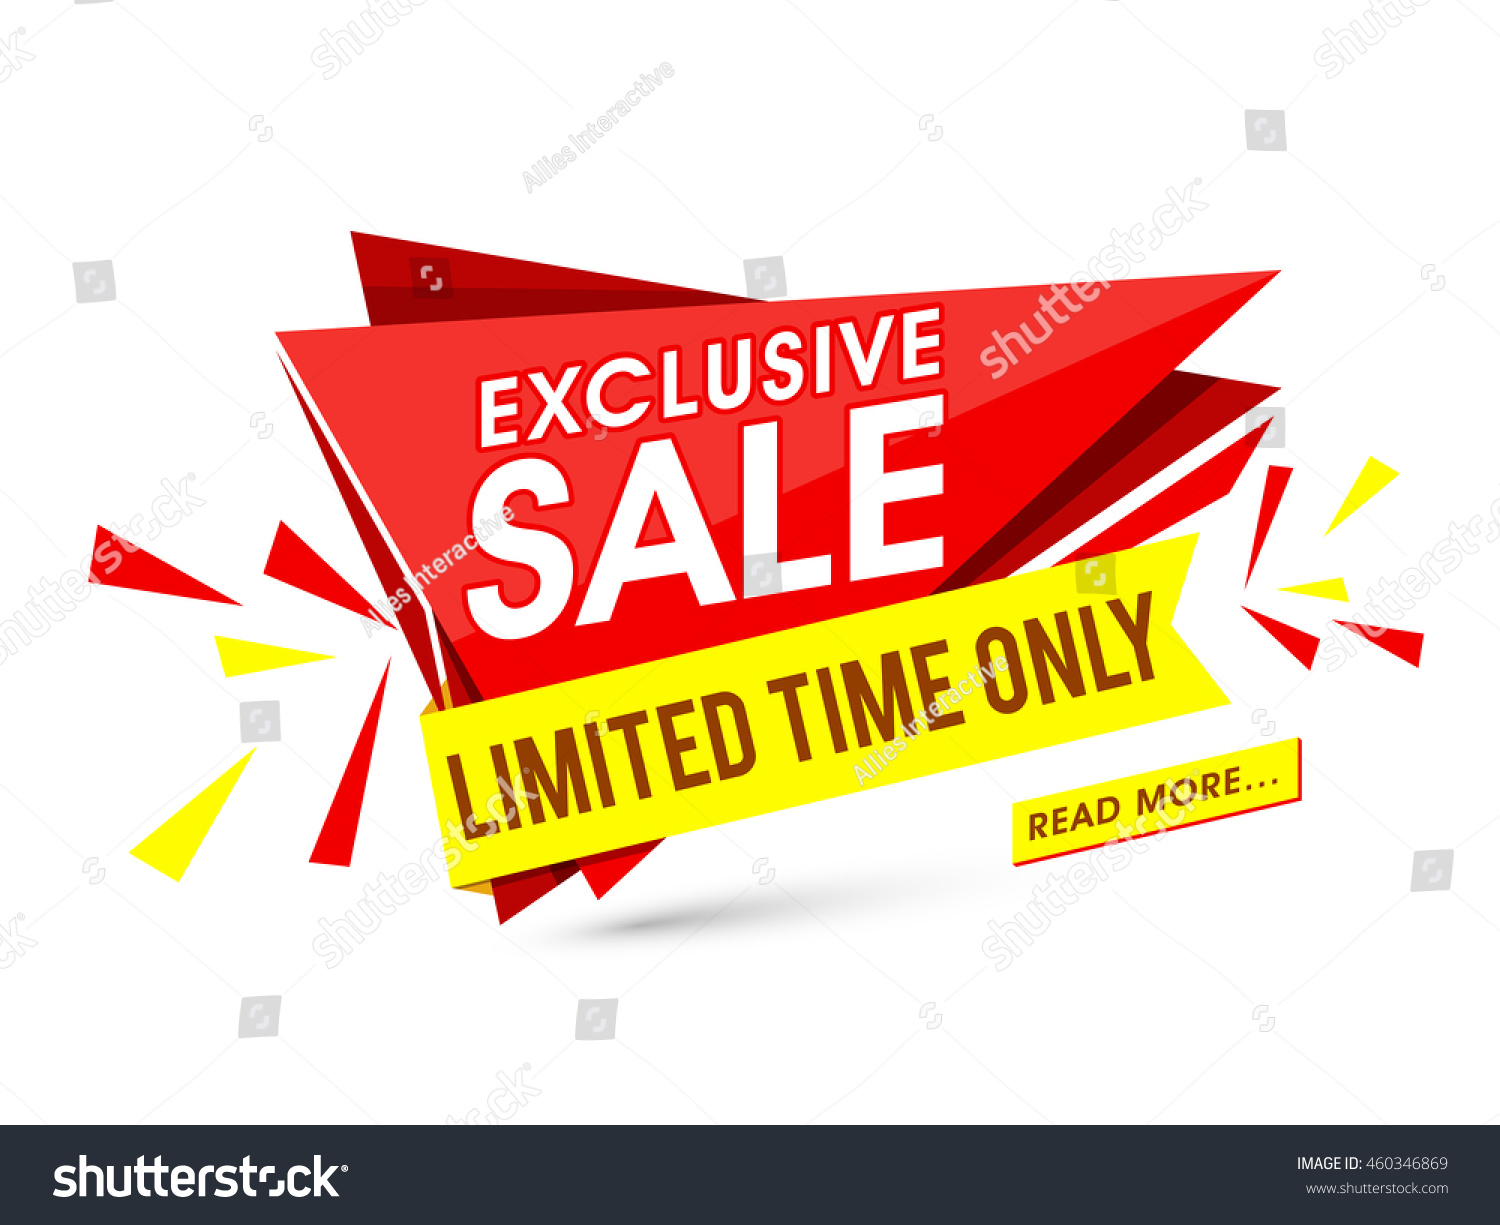 Exclusive Sale Limited Time Only Creative Stock Vector